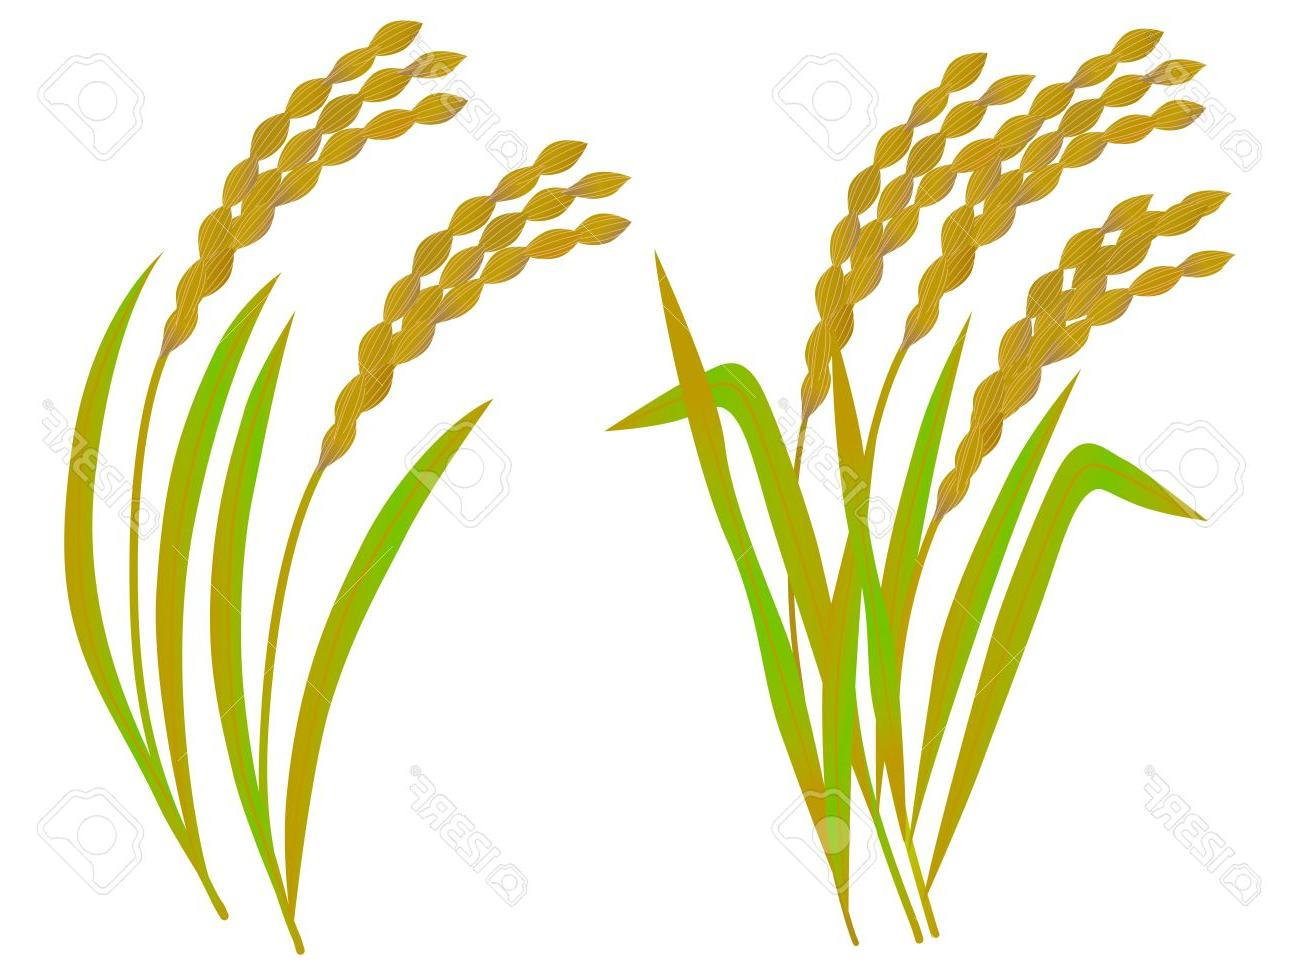 Collection of Wheat clipart.